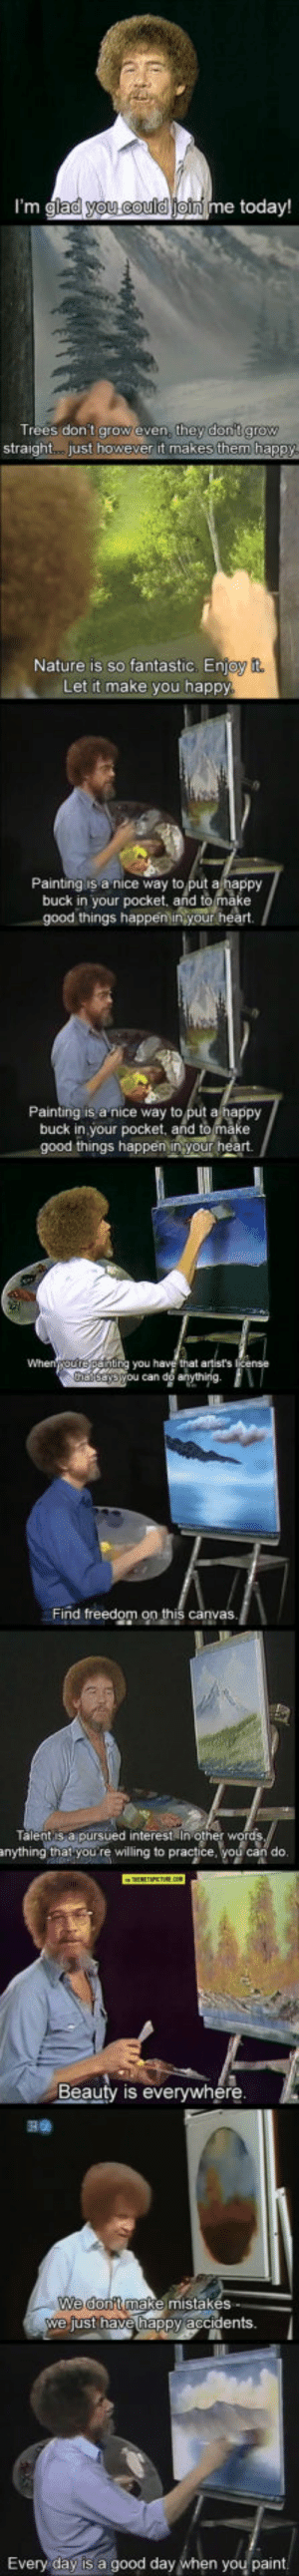 srsfunny:Bob Ross, Ladies And Gentlemen: lad you could  me today!  Trees dont grow even, t  straight....just how  they dontgrow  it mak  Nature is so fantastic. Enio  Let it make you happy  Painting is a nice way to put a happy  buck in your pocket, and to make  good things happ  art.  Painting is a nice way to put a happy  buck in your pocket, and tomake  things happenin your heart  that artist's  Find freedom on this canvas  Talent s aipursued interestIn  nything thalyou re wiling to practice, you can do  Beauty is everywhere  We  we just havehappy accidents.  e mistakes  Every day is a good day  paint srsfunny:Bob Ross, Ladies And Gentlemen